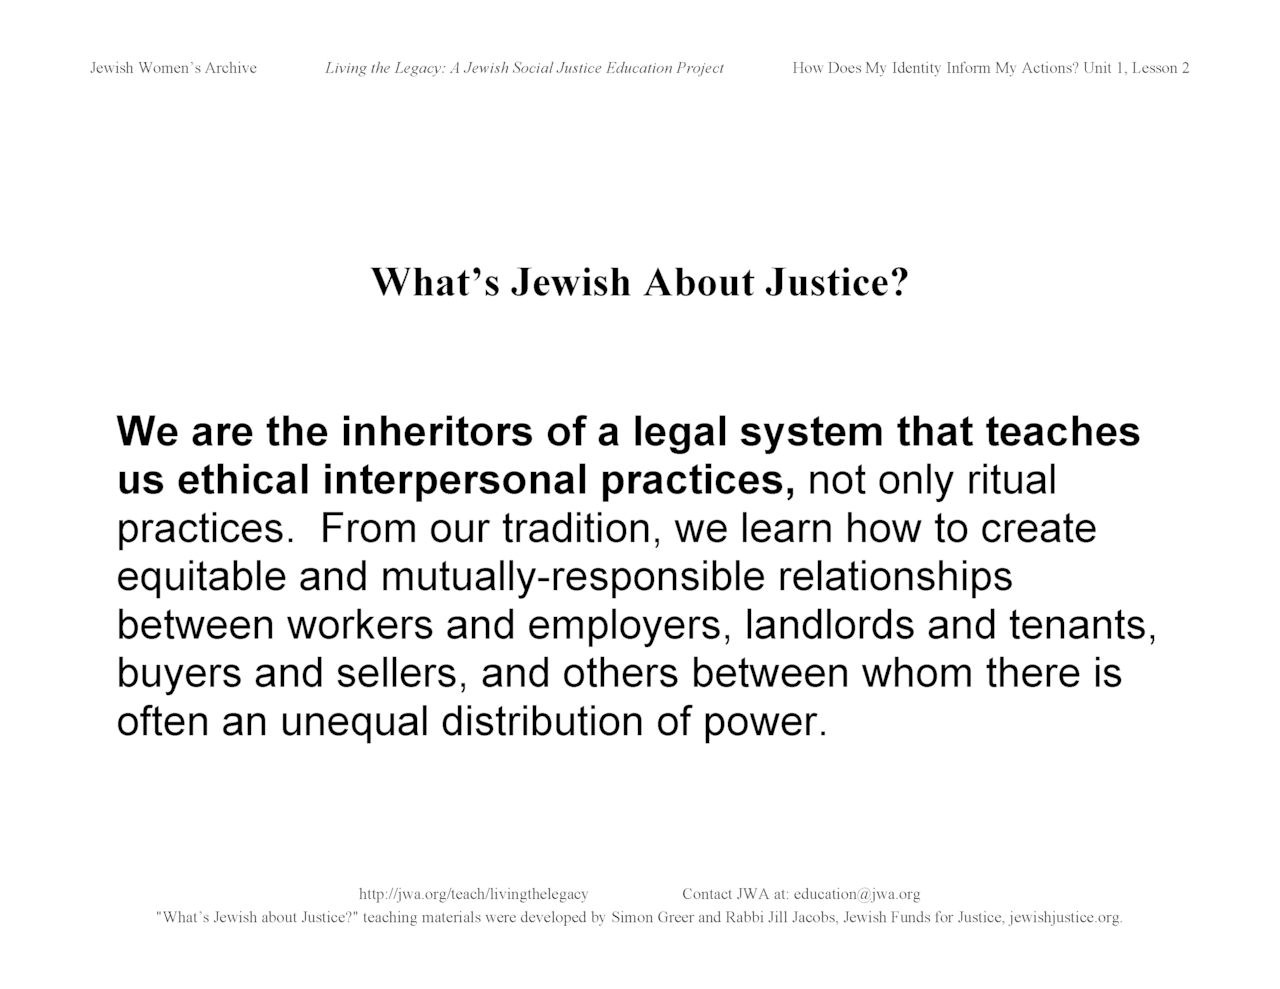 """What's Jewish About Justice?"" signs: ...legal system that teaches us ethical interpersonal practices"